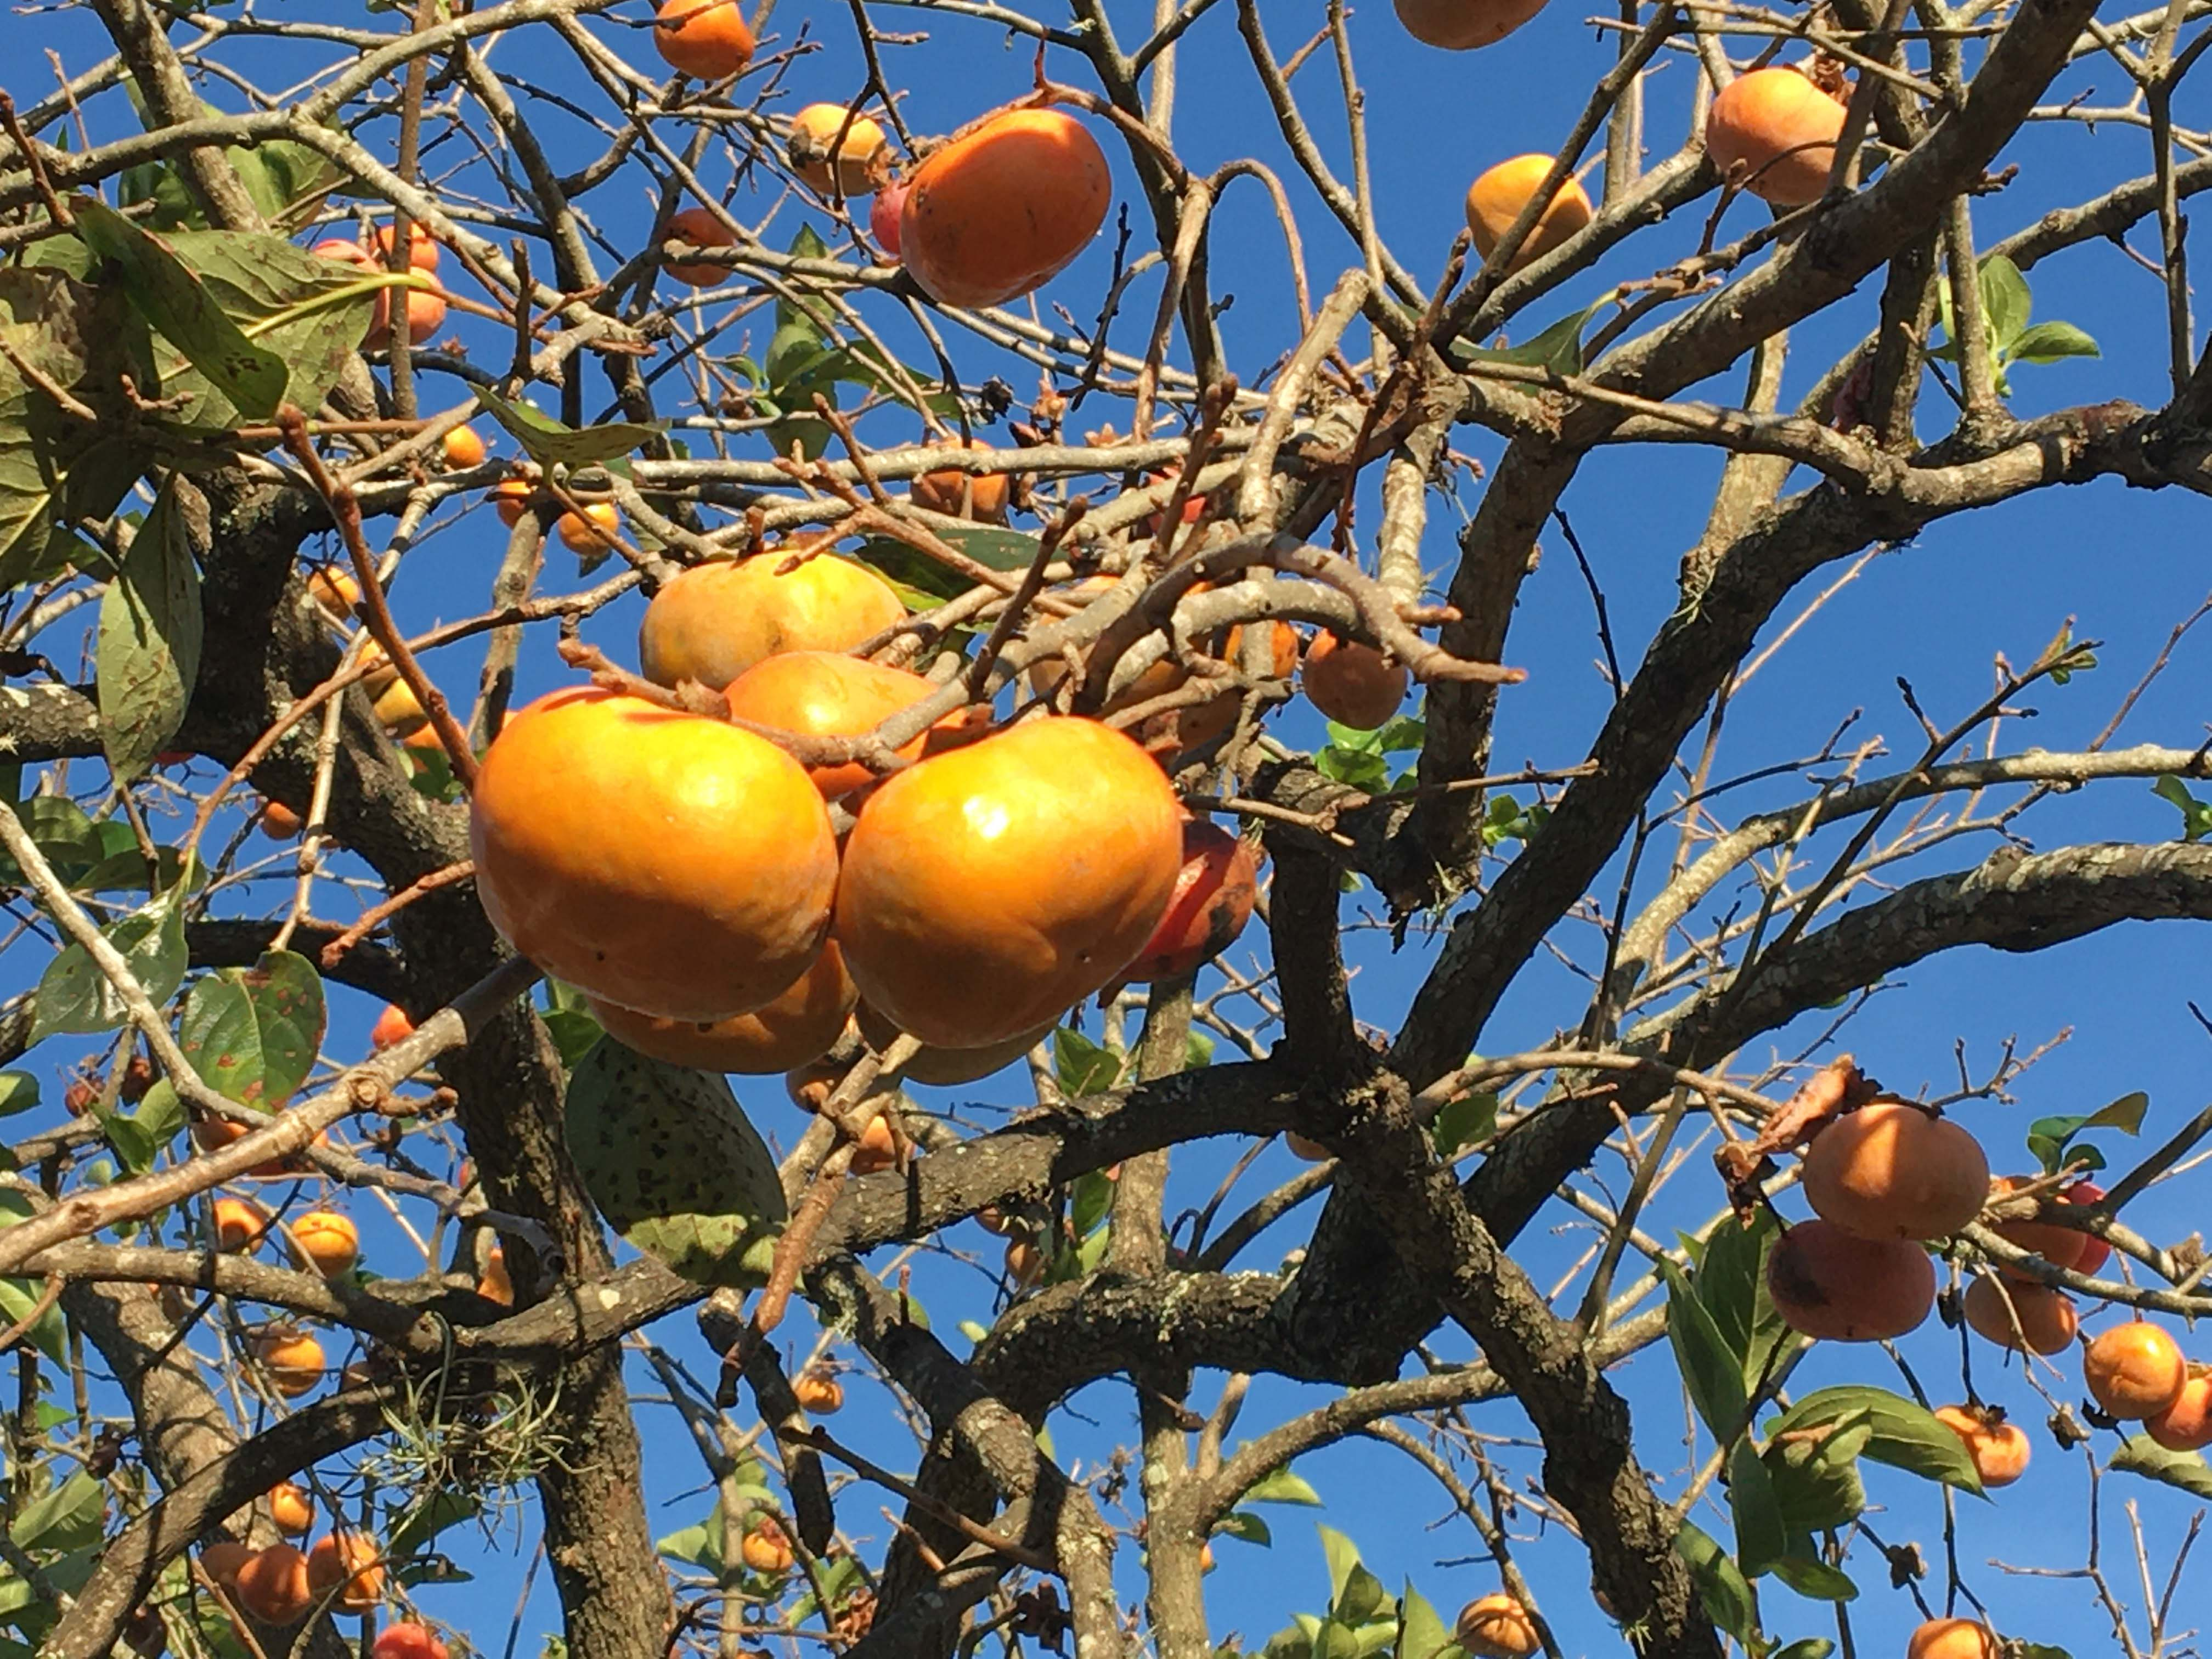 Persimmon fruit hangs on the trees in fall even after leaves have droppedJPG